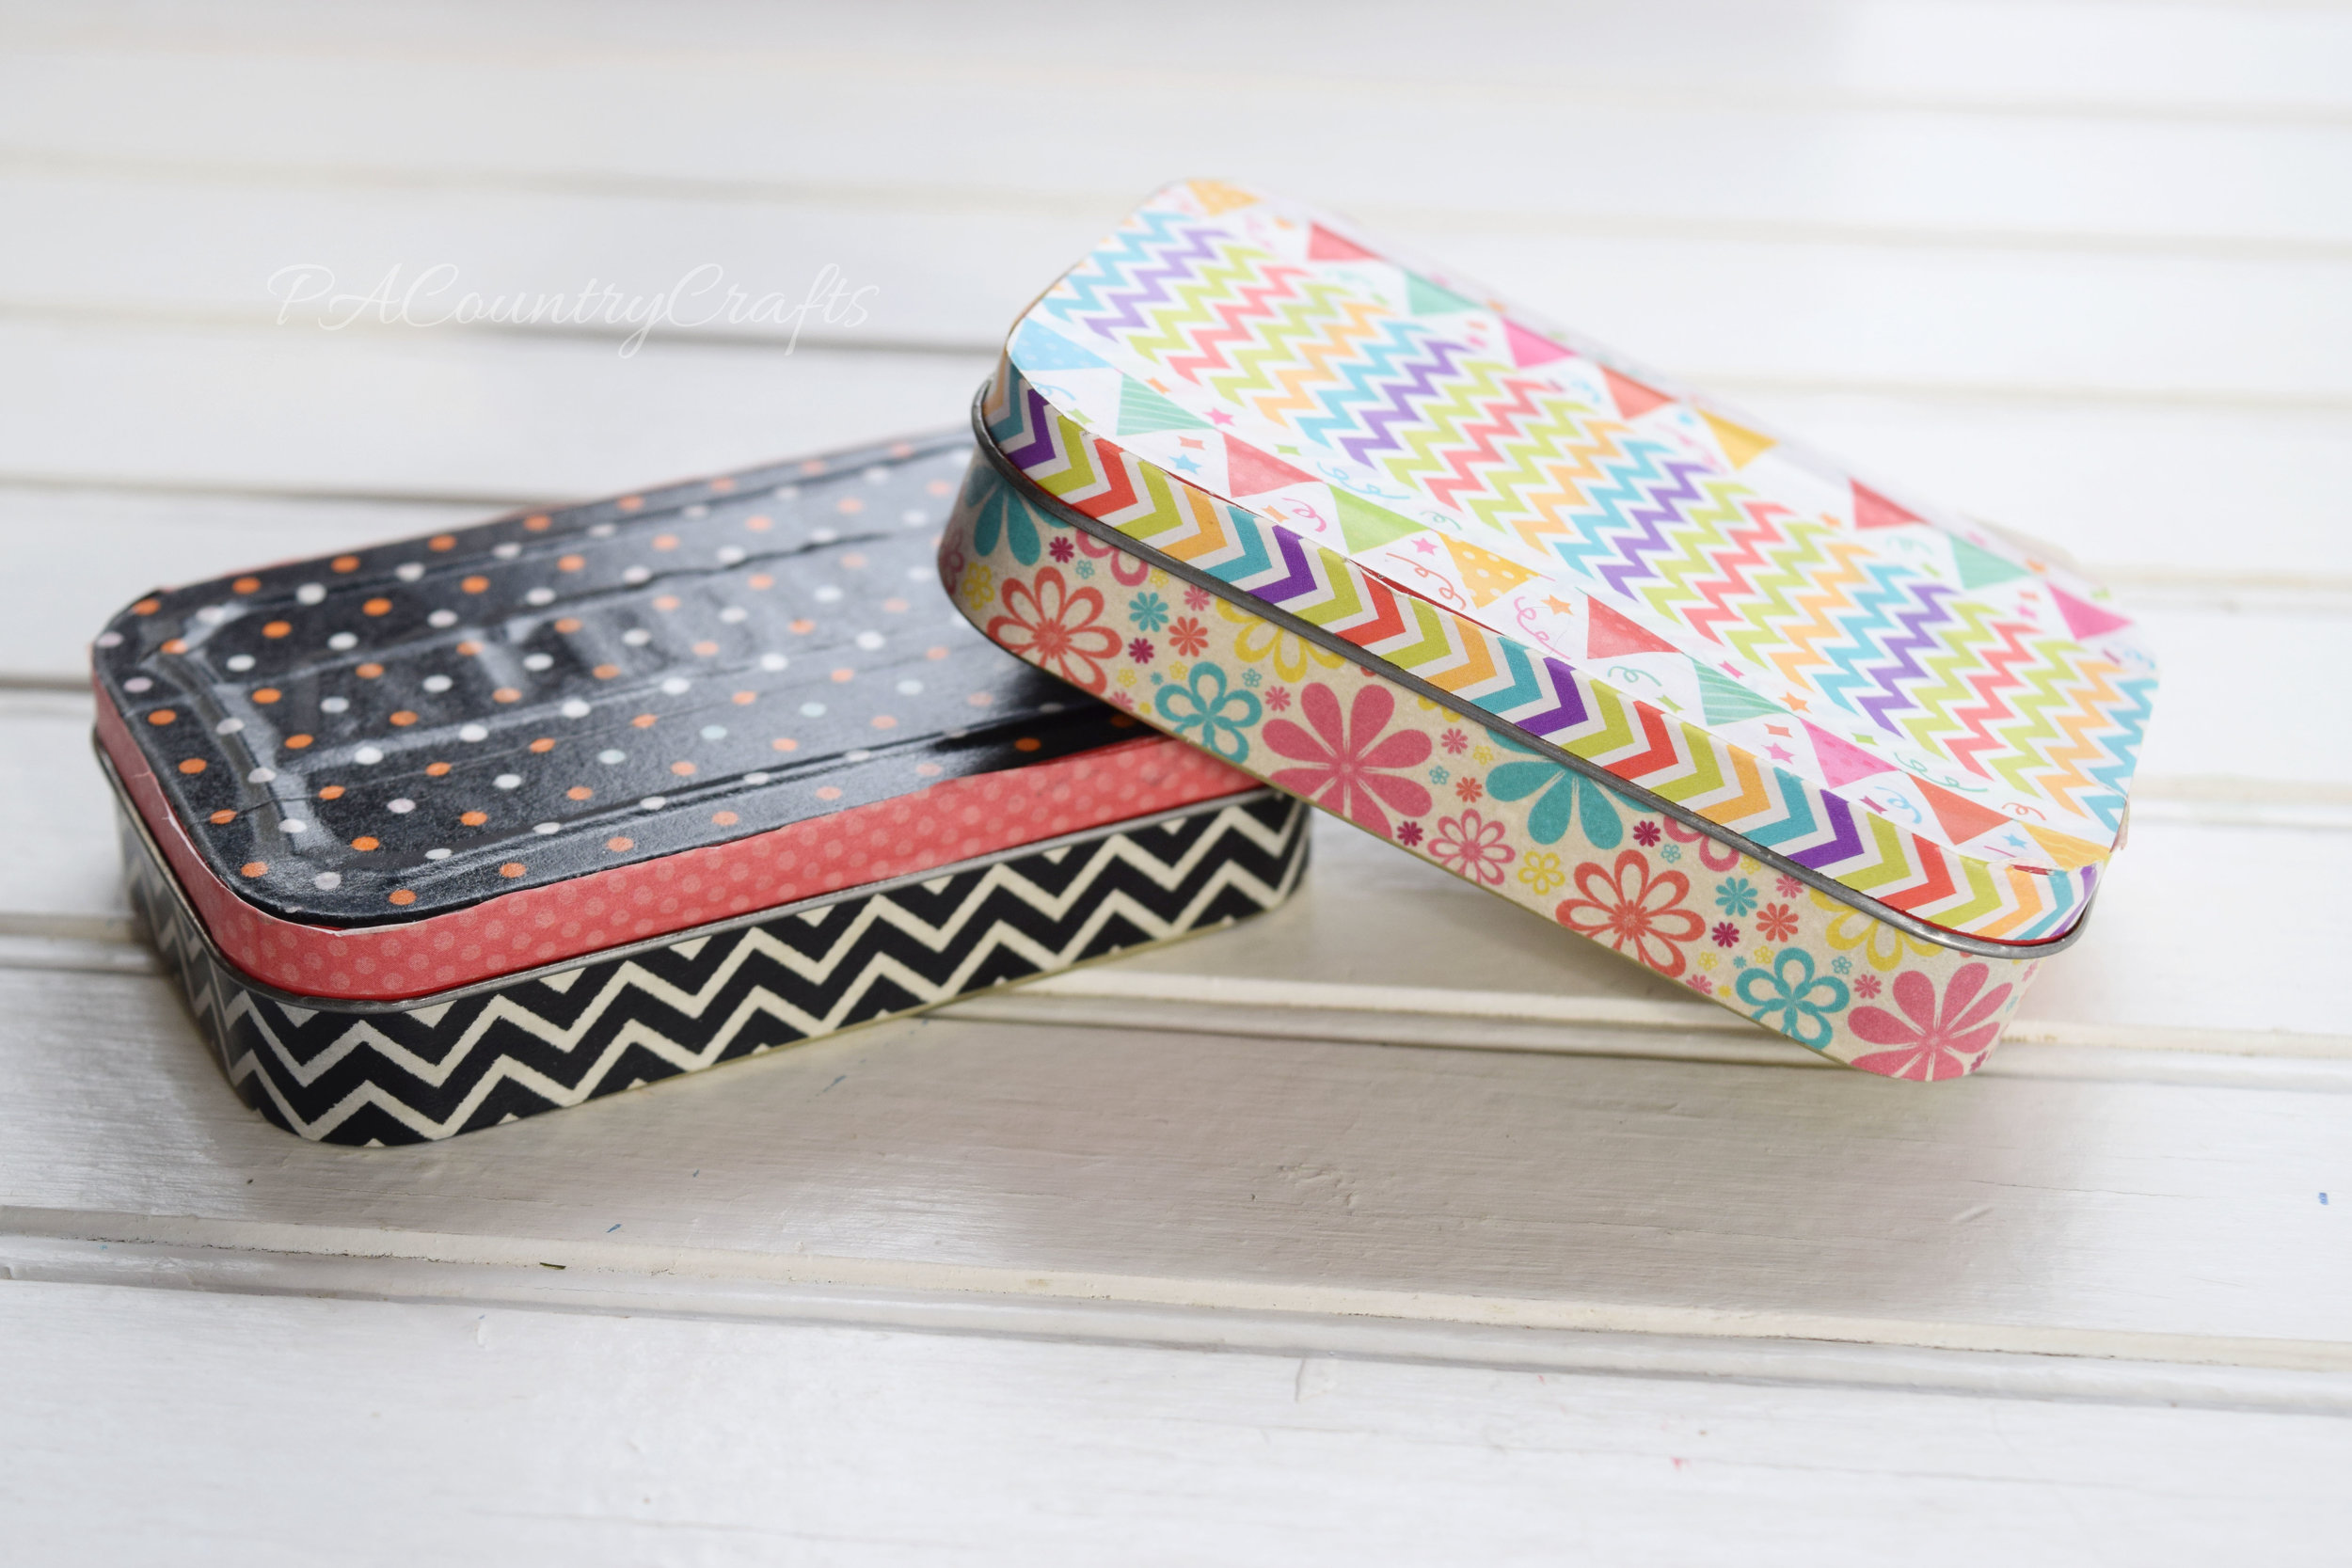 Washi tape altoid tins- so cute and easy!